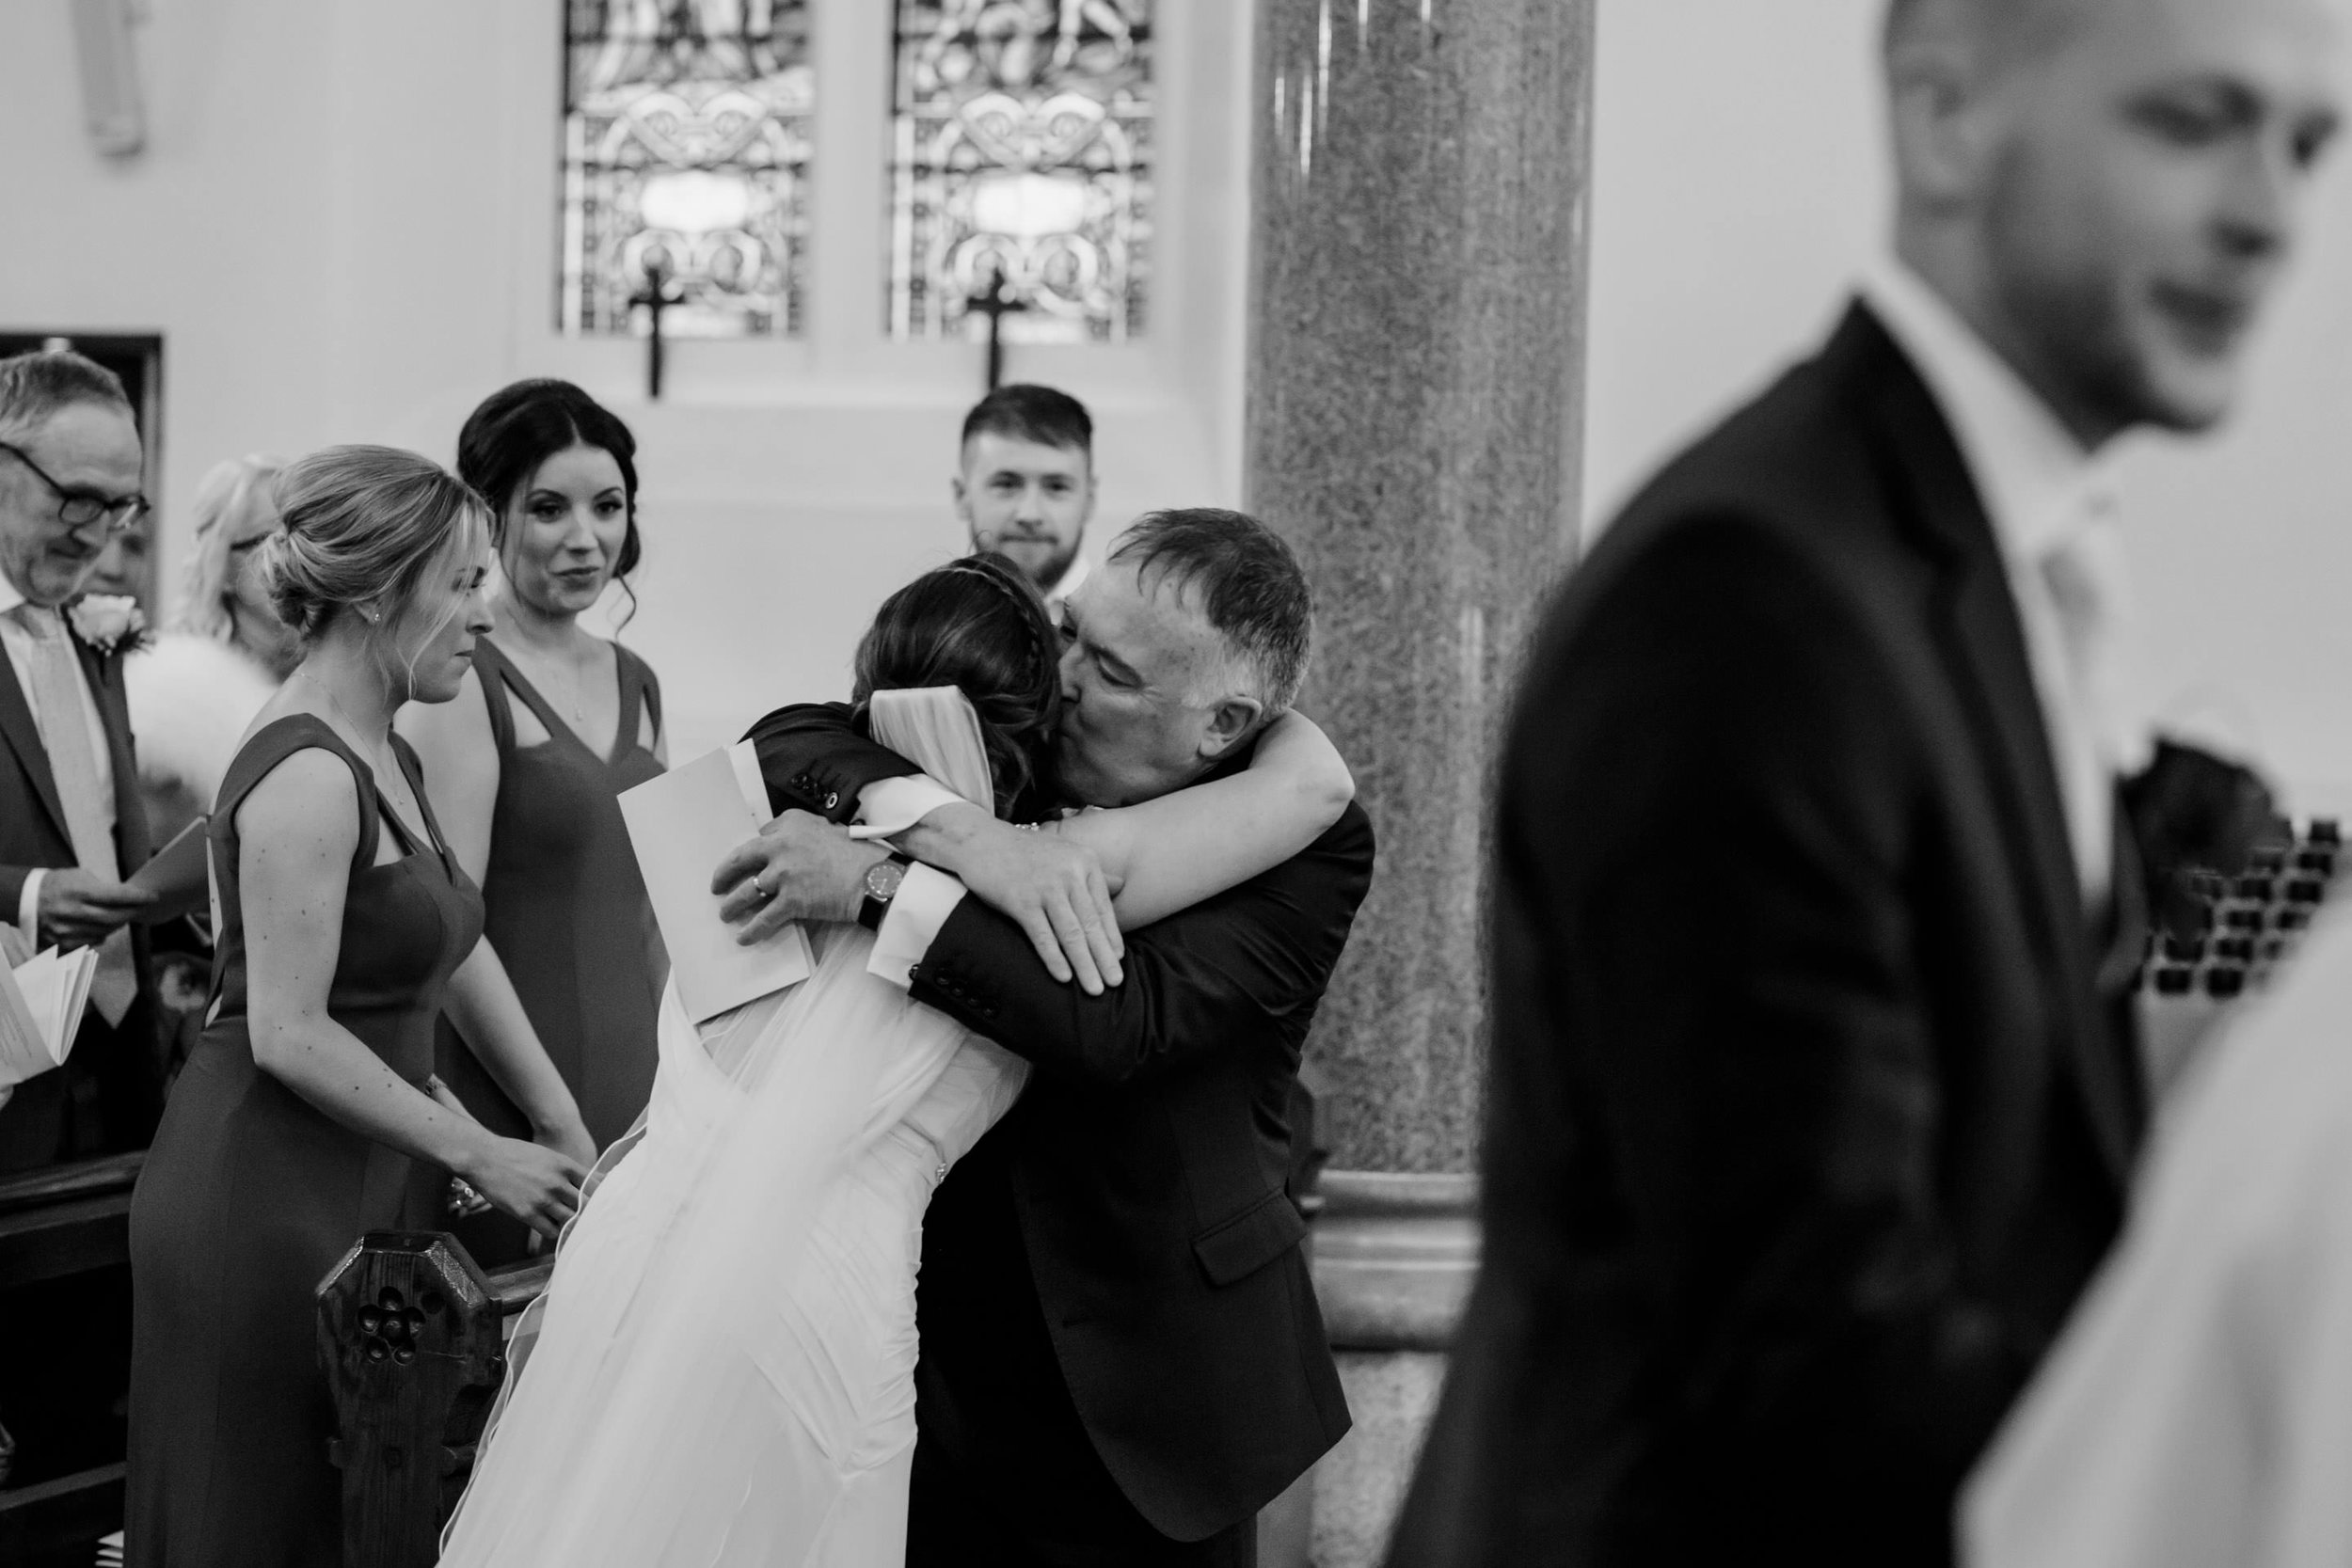 Barberstown_Castle_Wedding_Photographer_Livia_Figueiredo_295.jpg